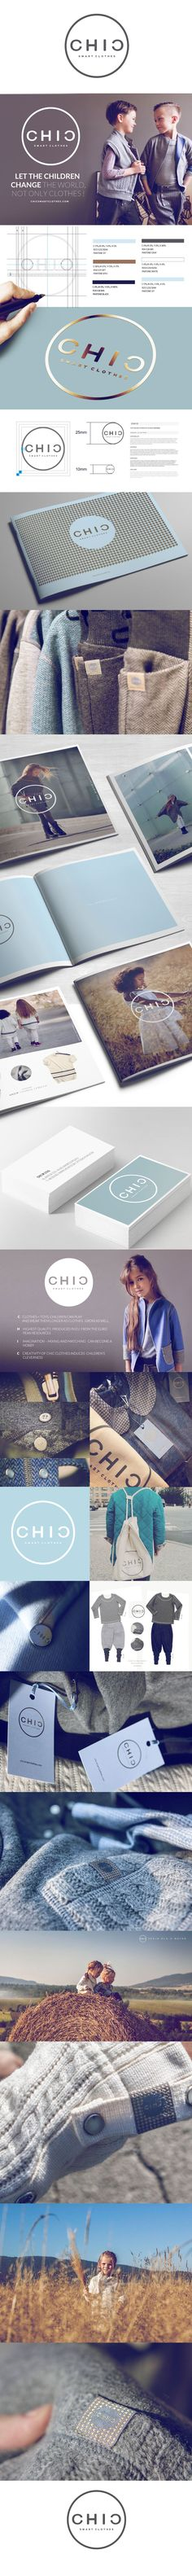 CHIC - smart clothes ID on Behance                                                                                                                                                                                 More - Tap the LINK now to see all our amazing accessories, that we have found for a fraction of the price <3